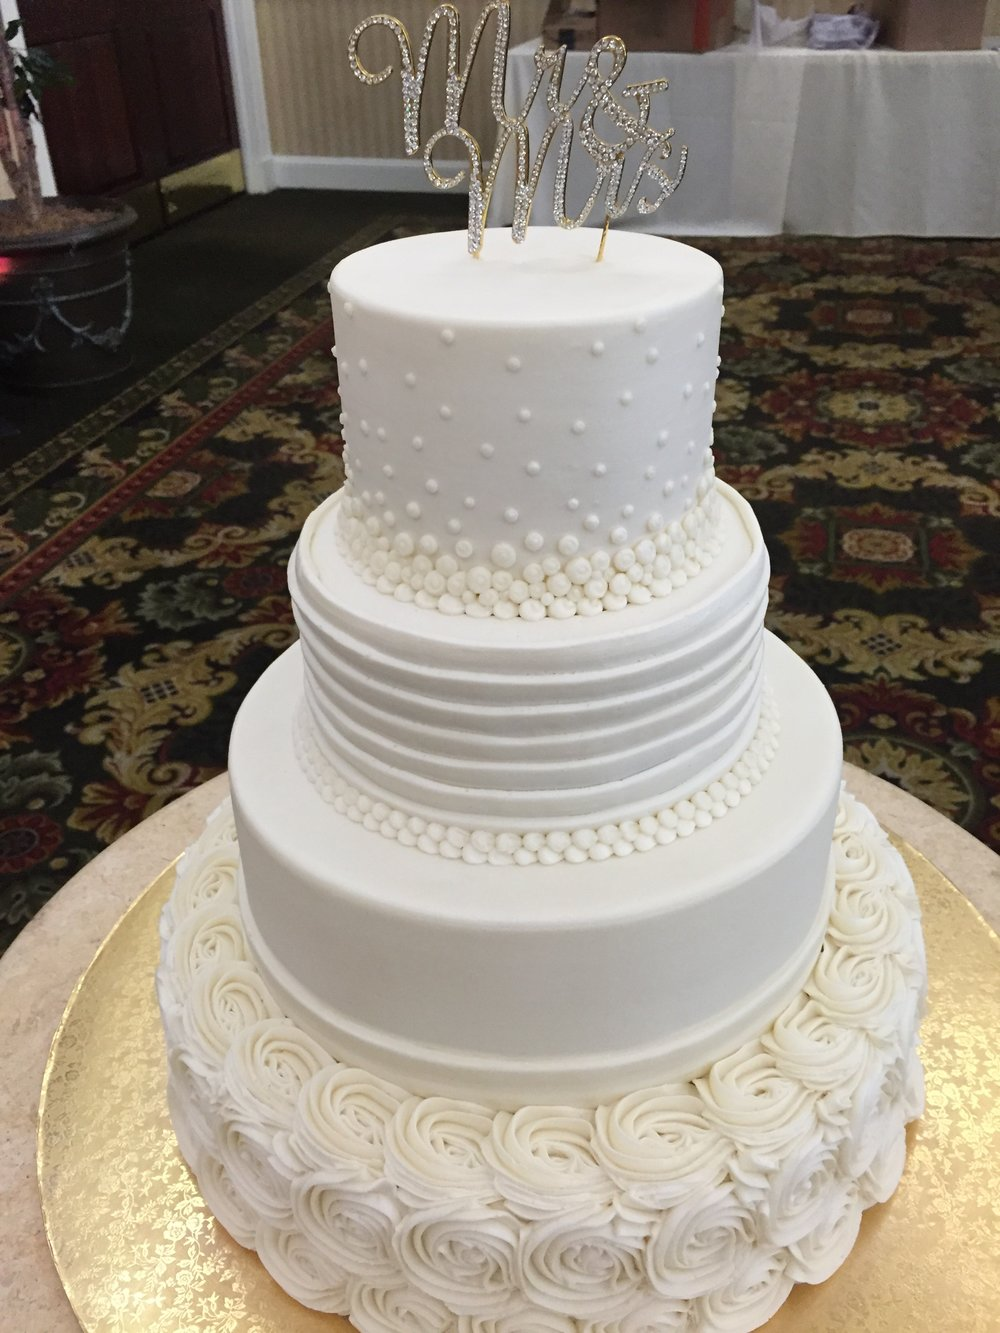 Rosettes, Ruffles and Pearls Wedding Cake